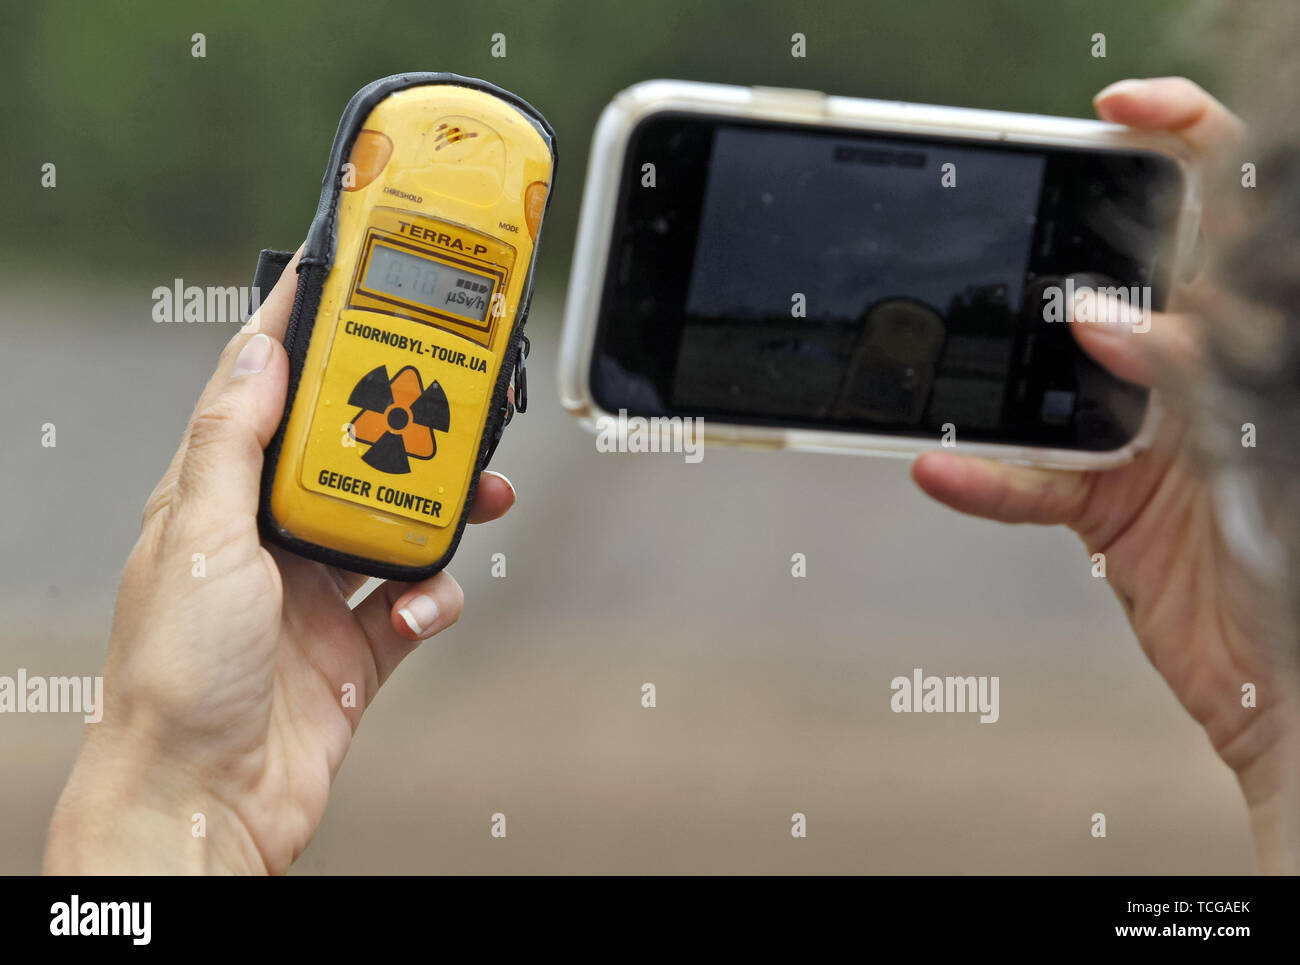 Kiev, Ukraine. 7th June, 2019. A visitor takes a photo of a geiger counter in front the New Safe Confinement over the fourth block of the Chernobyl nuclear plant in Chernobyl, Ukraine, on 7 June 2019. The success of a U.S. HBO's television miniseries 'Chernobyl' has renewed interest around the world on Ukraine's 1986 nuclear disaster. Tourism to Chernobyl has spiked 40% following the debut of the HBO series in May, tour agencies reported . Last April Ukrainians marked the 33rd anniversary of the Chernobyl disaster. Credit: ZUMA Press, Inc./Alamy Live News - Stock Image